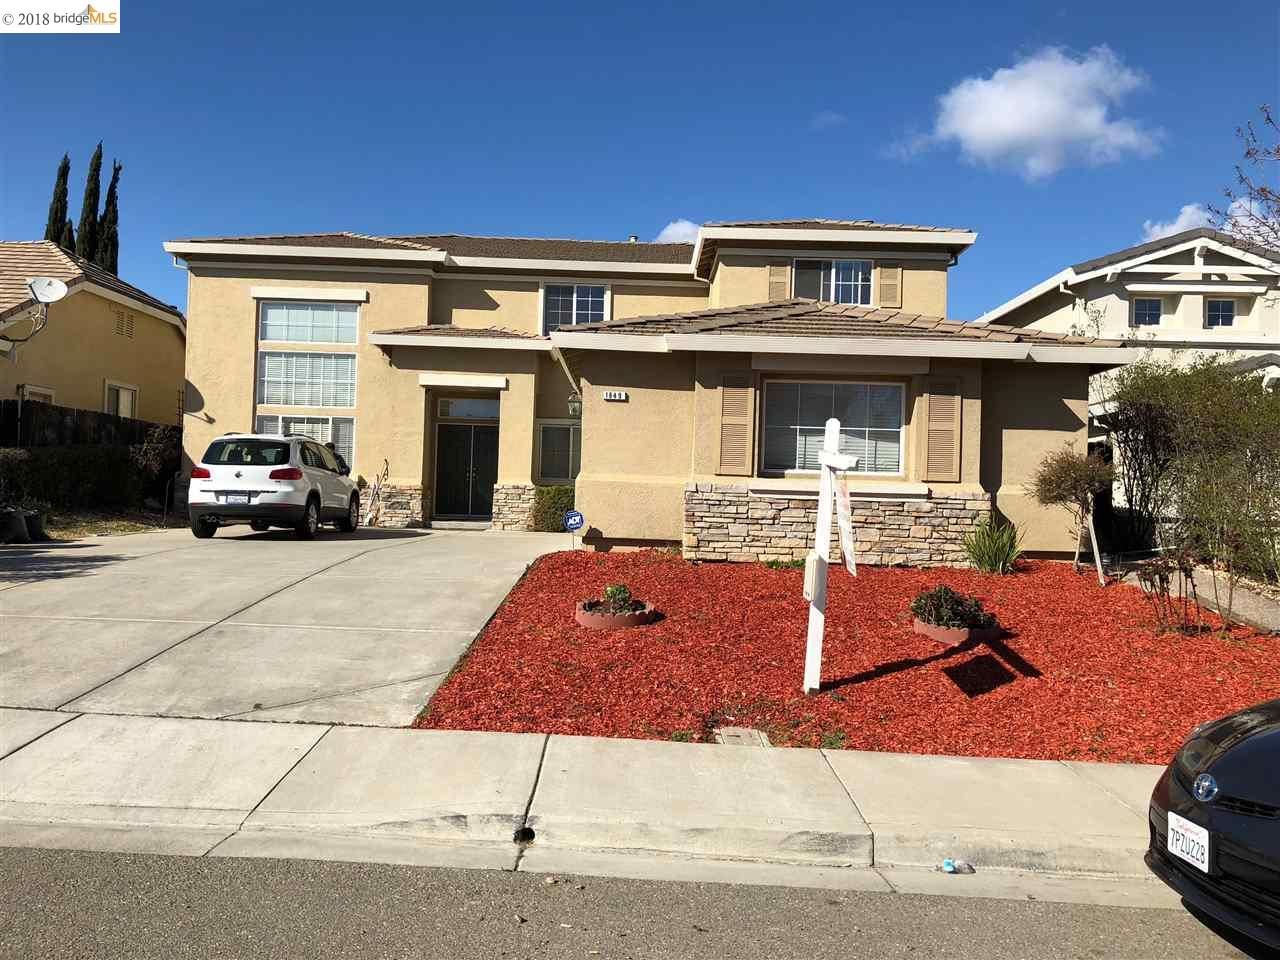 Additional photo for property listing at 1849 Kern Mountain Way 1849 Kern Mountain Way Antioch, カリフォルニア 94531 アメリカ合衆国